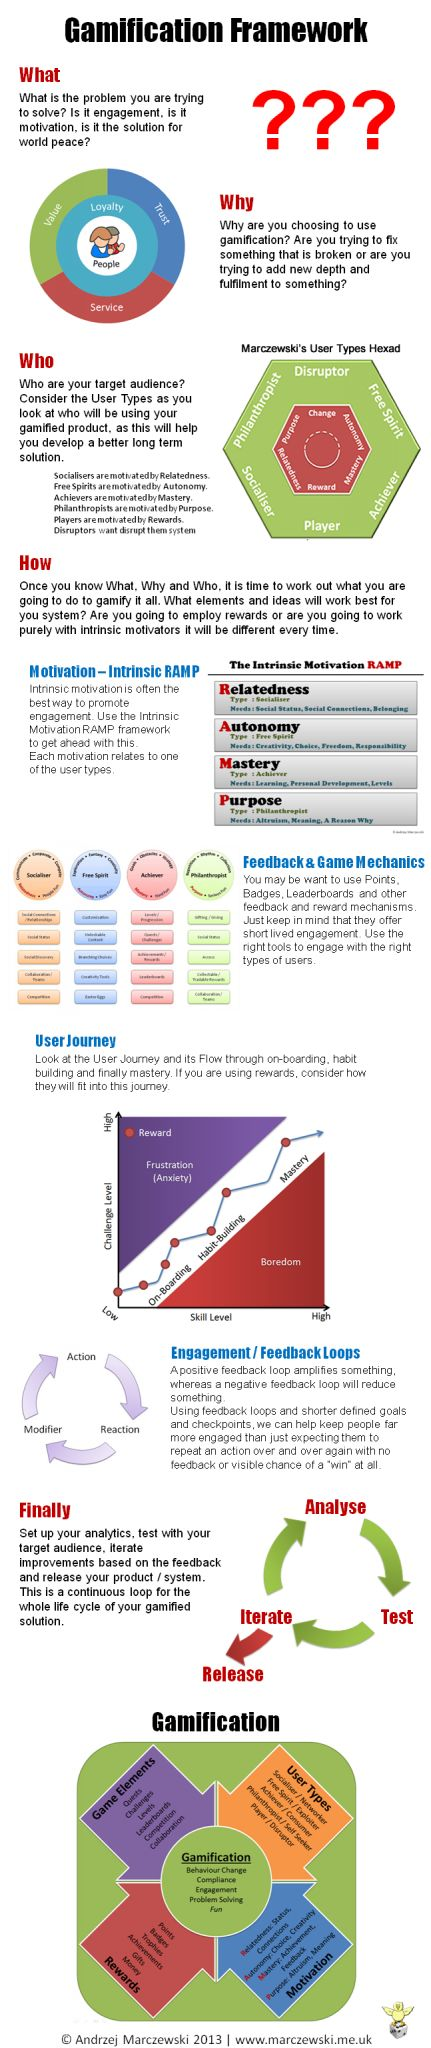 gamification infographic large